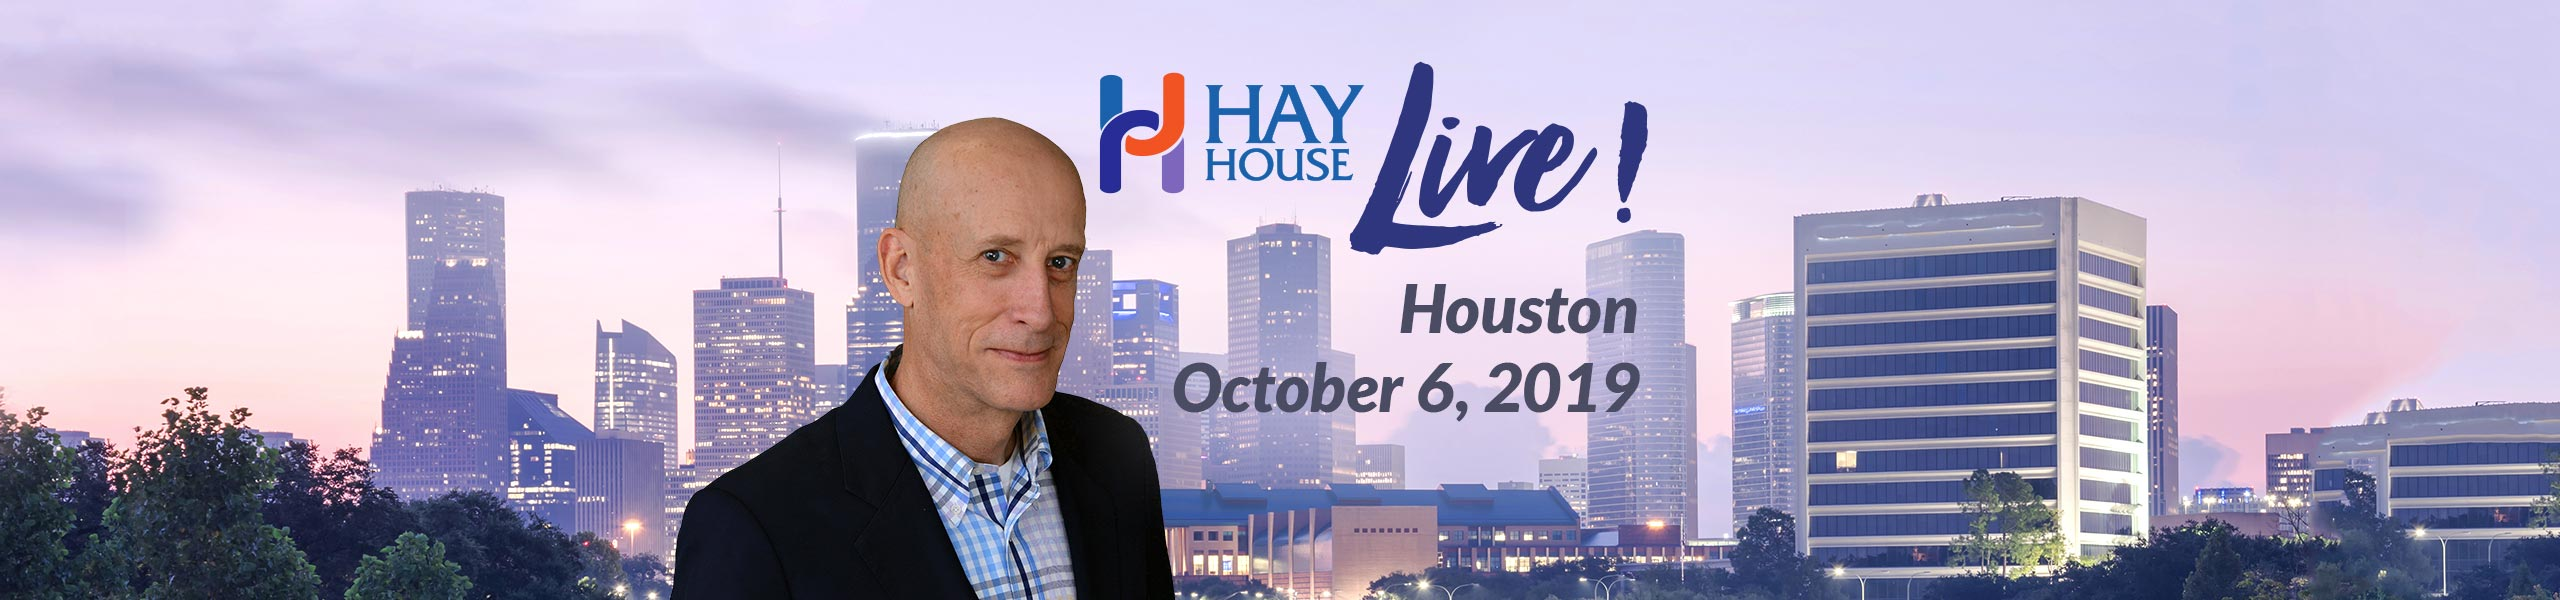 Hay House Live! Houston 2019 - Mike Dooley